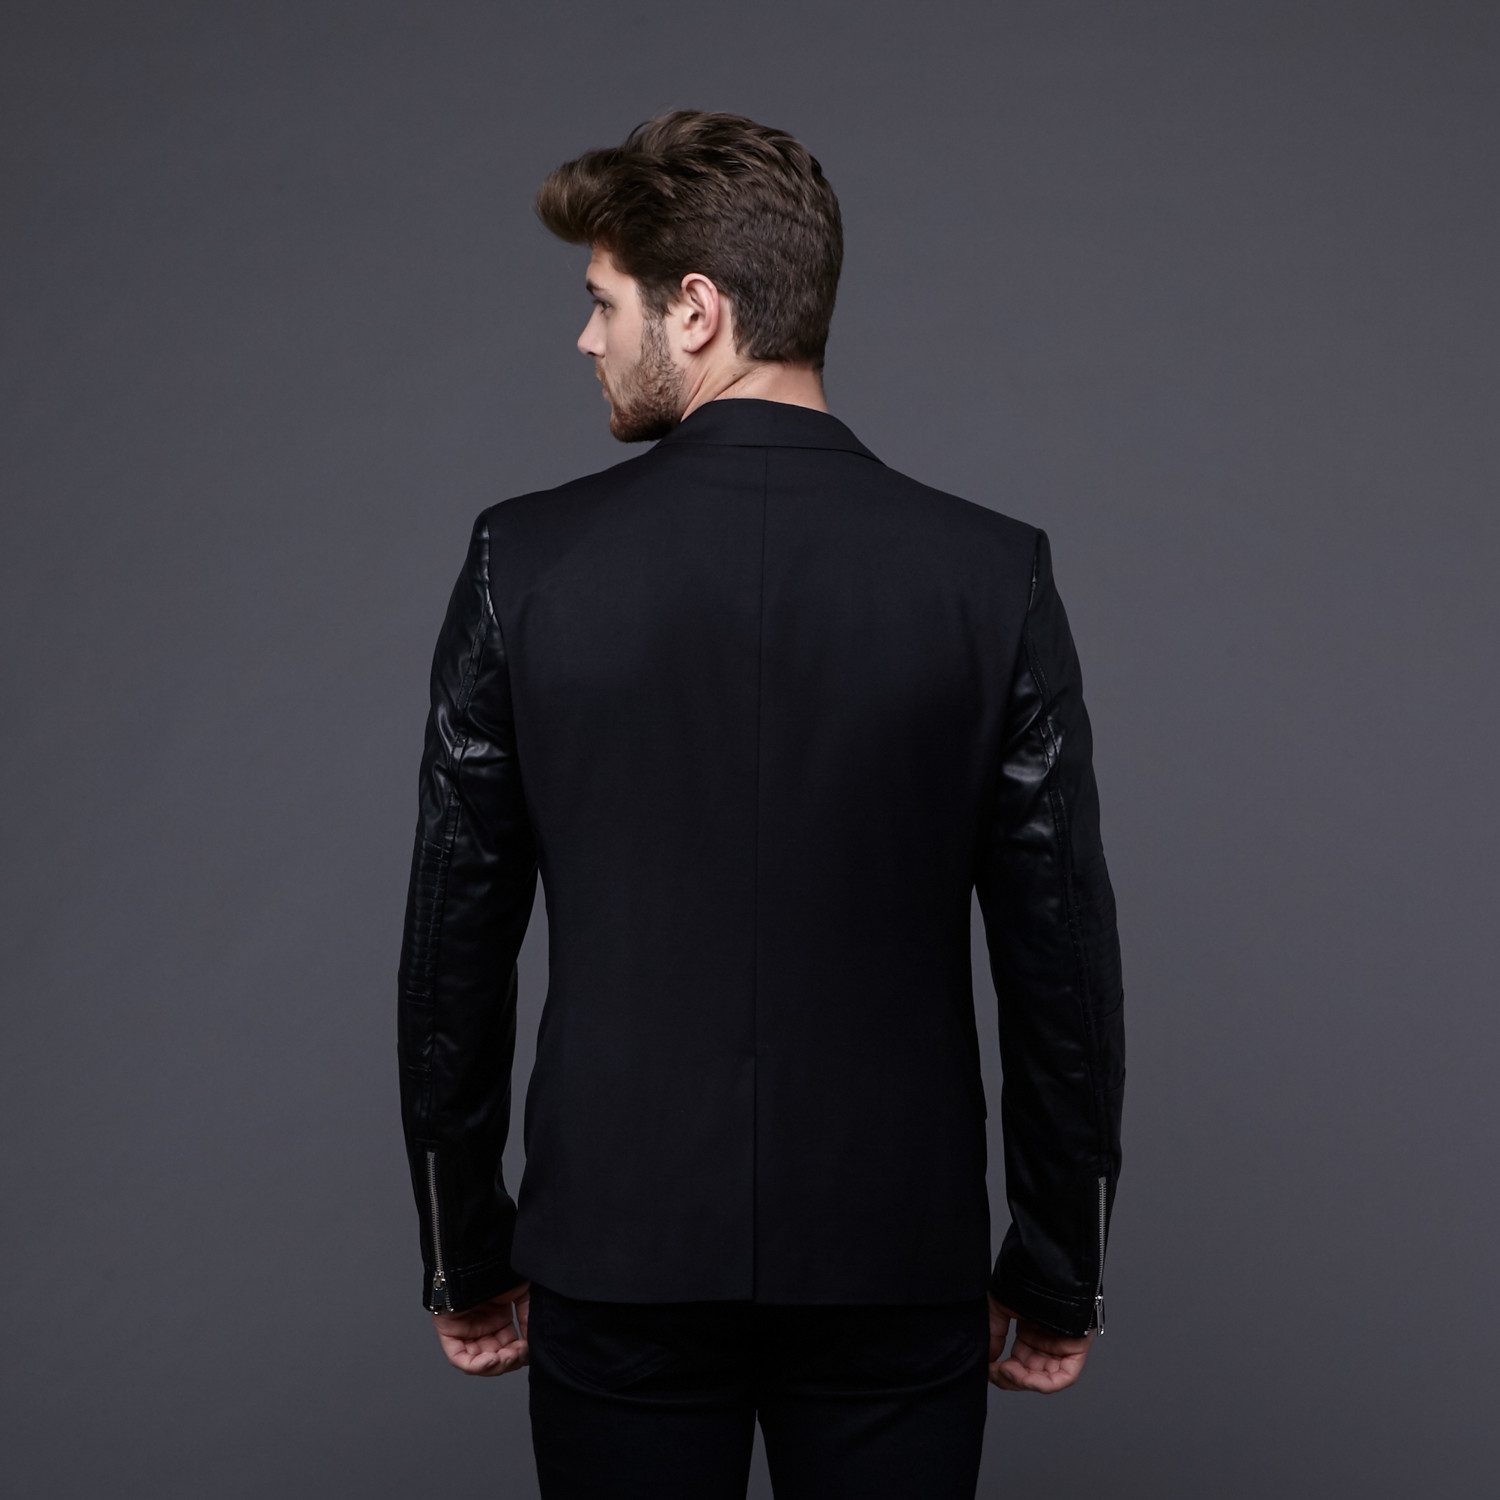 Blazer Antony Fall Black Contrast s Fashion Final Morato 8n4xnTqwf